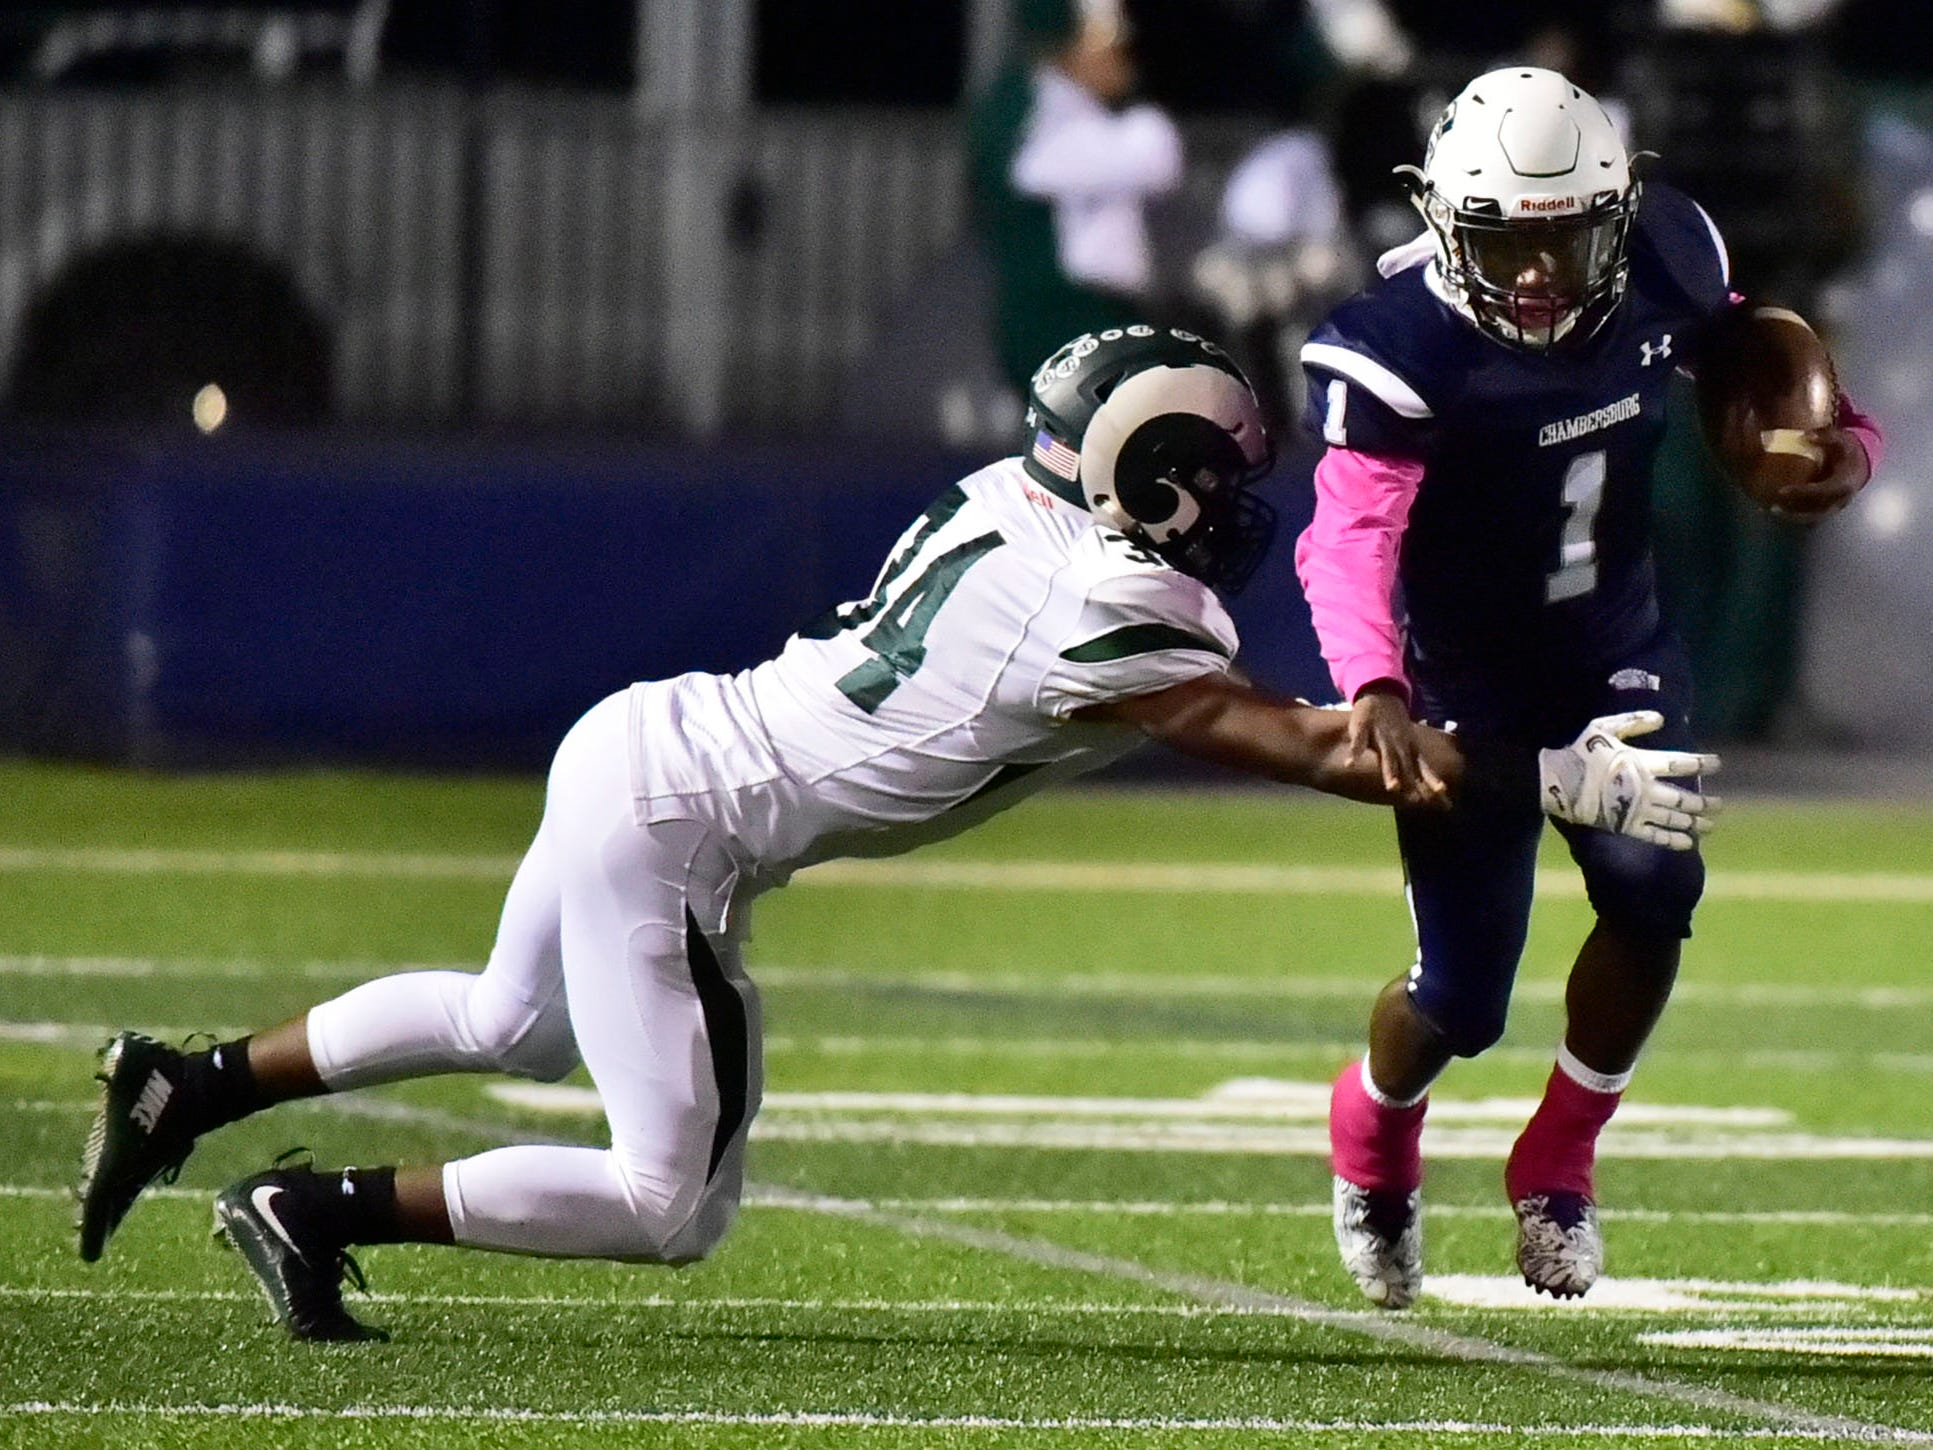 Chambersburg's Kevin Lee (1) returns a kickoff as Timmy Smith (34) of CD makes a tackle. Chambersburg lost to Central Dauphin 35-14 in PIAA football on Friday, Oct. 19, 2018.